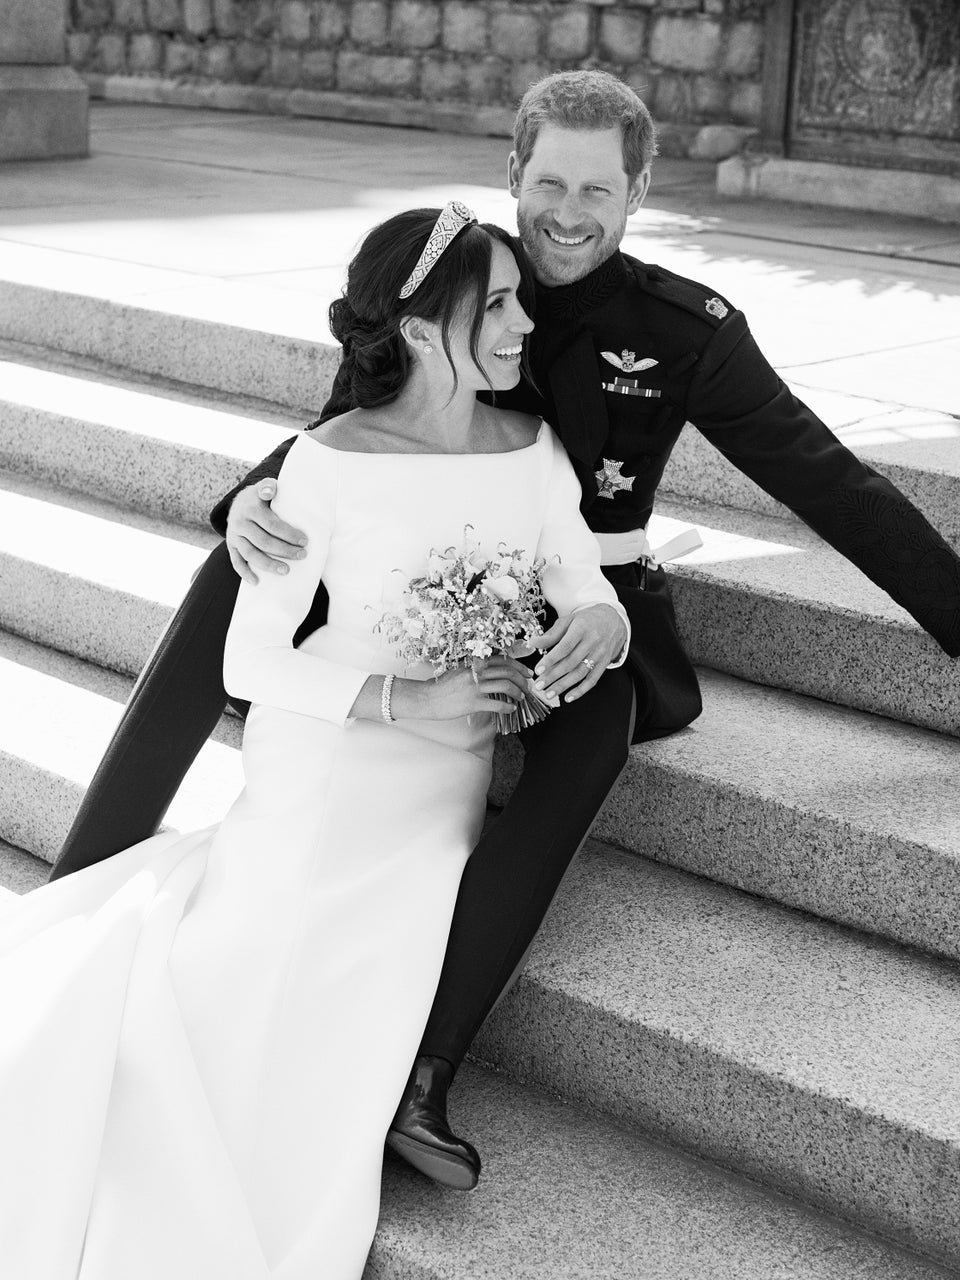 The Story Behind One Of Prince Harry And Meghan Markle's Best Wedding Portraits Is As Sweet As The Photo